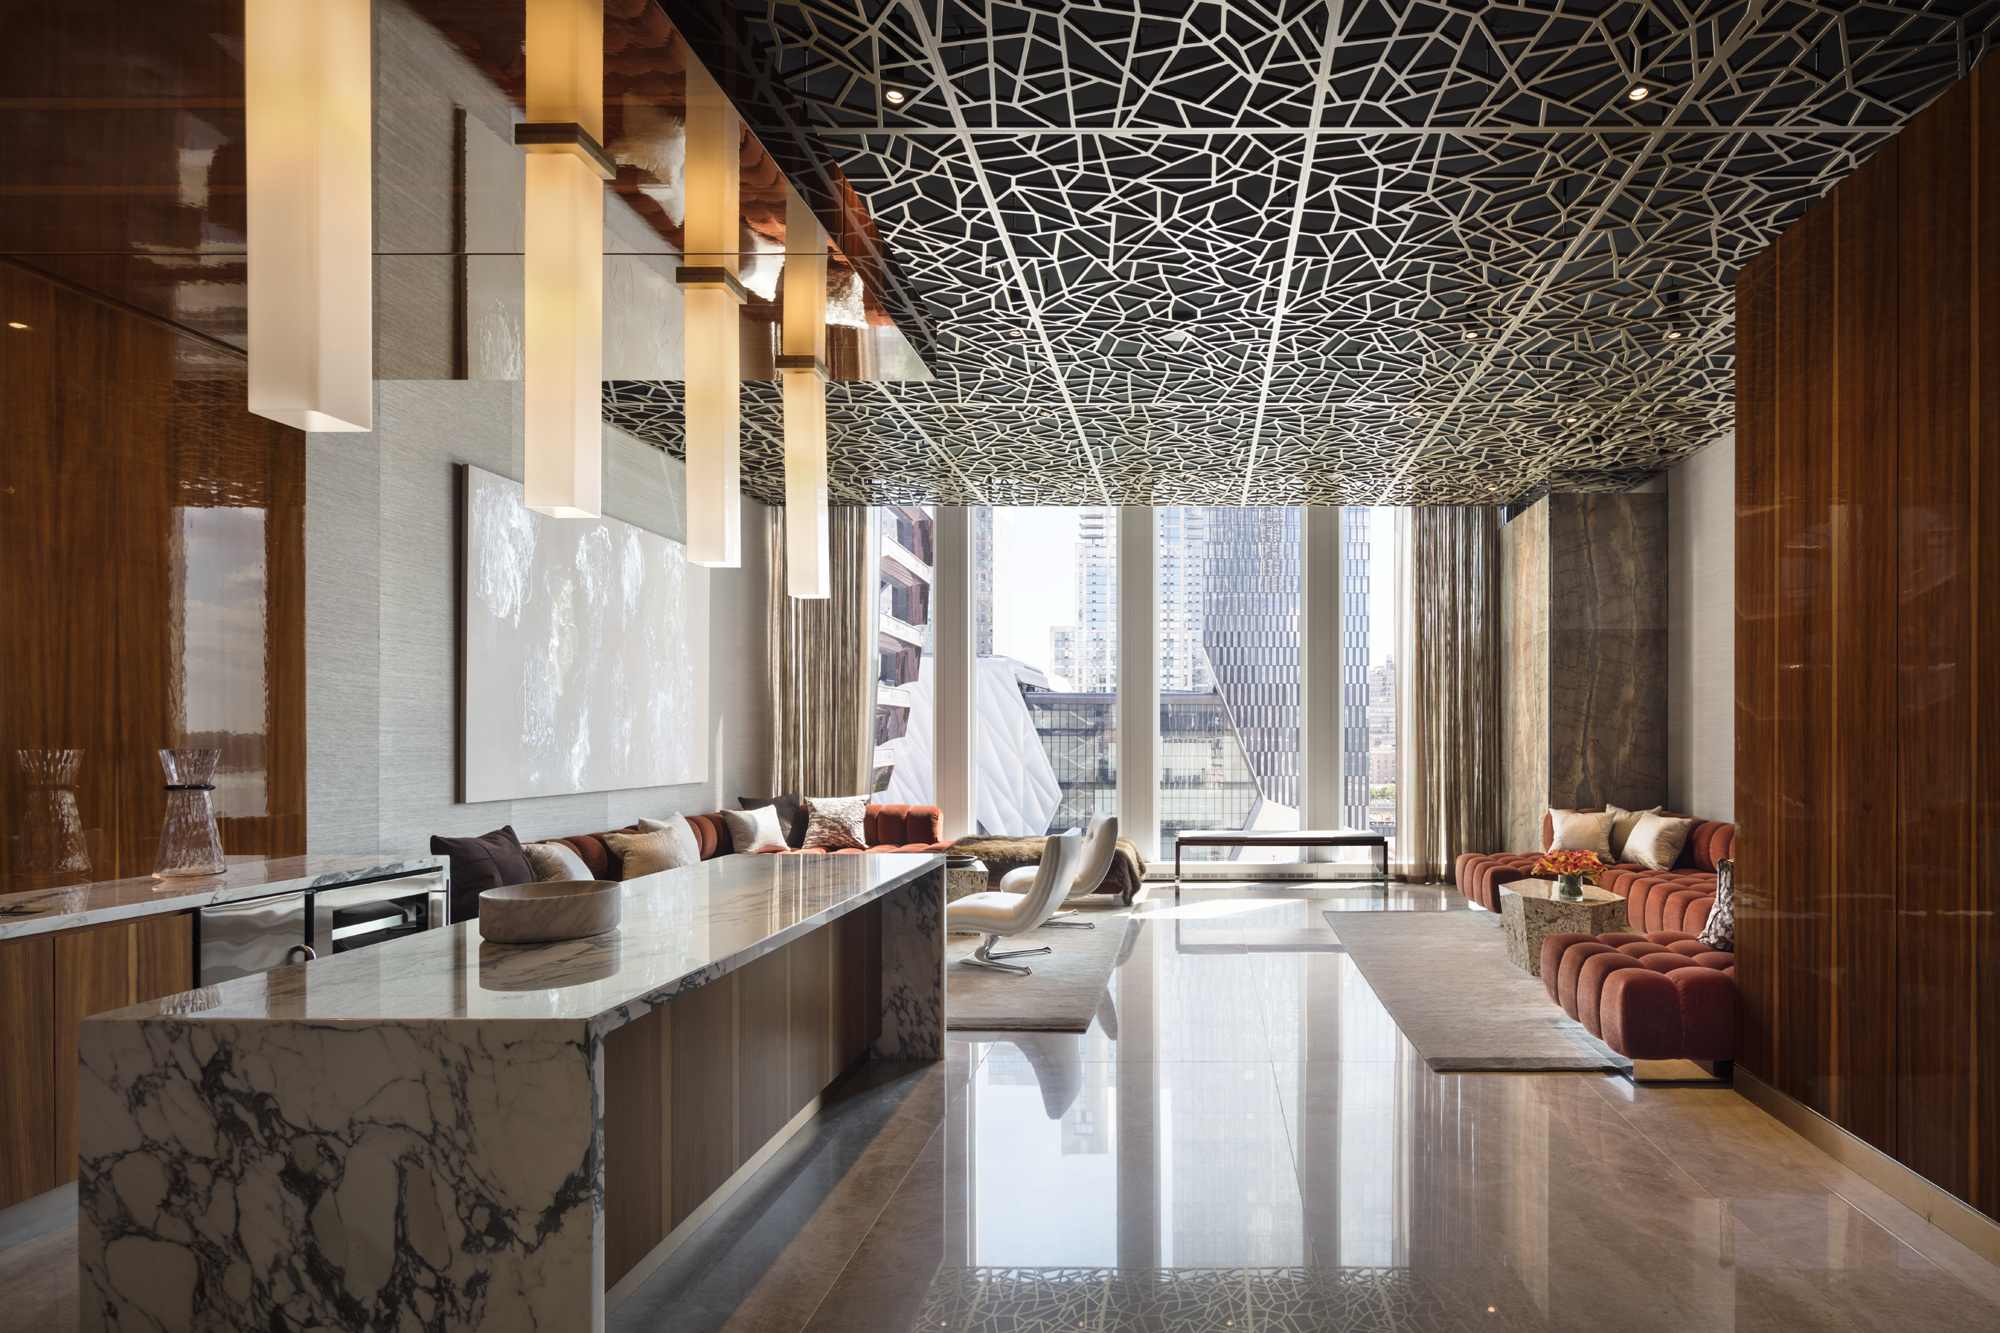 35 Hudson Yards_Amenities_Lounge 1_Photo Courtesy of Related Companies by Scott Frances.jpg